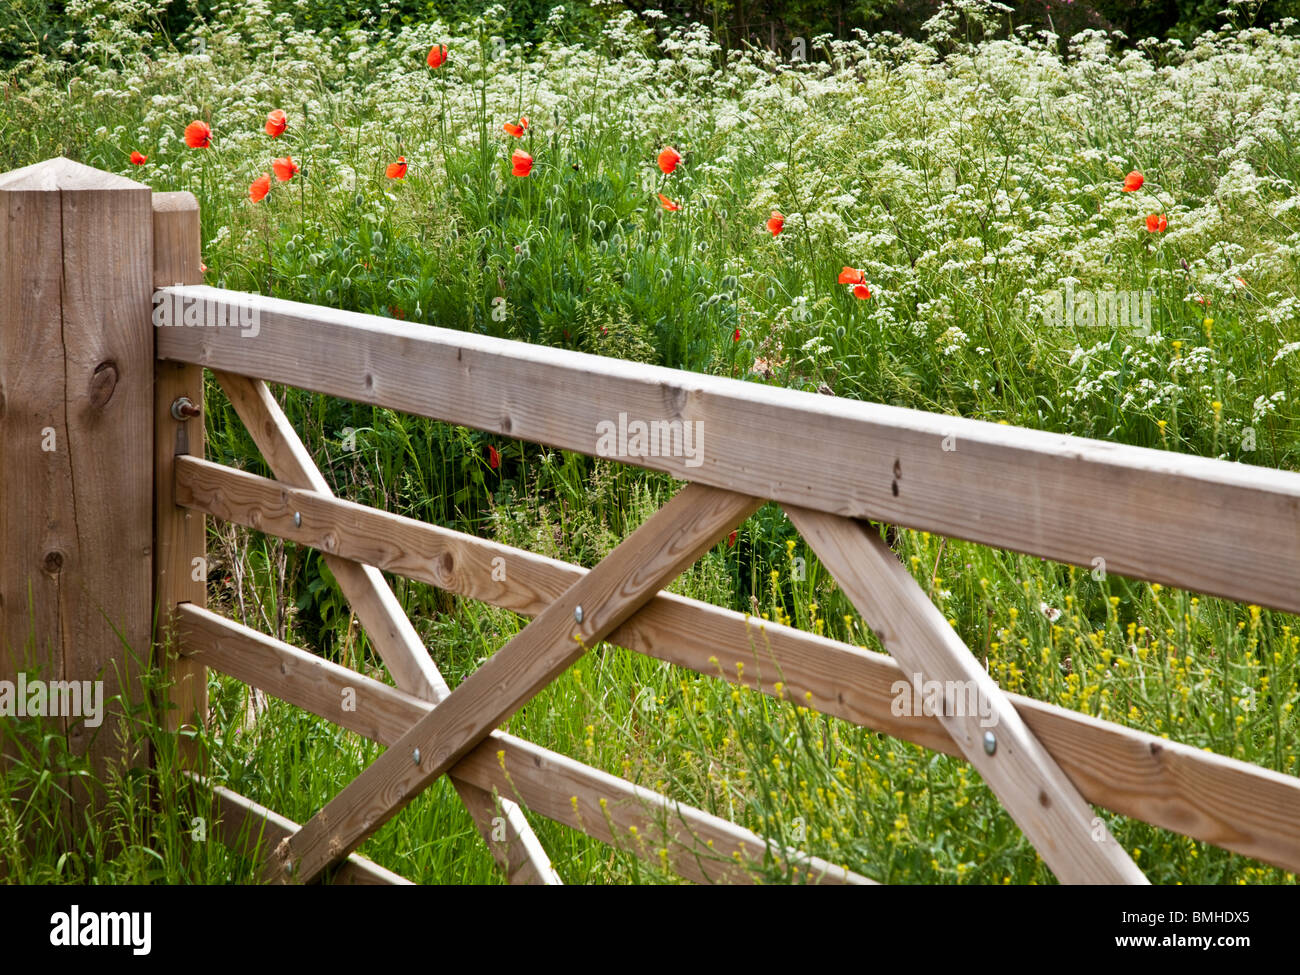 Wooden five-barred gate into a field of cow parsley and wild red poppies in typical English summer countryside. - Stock Image